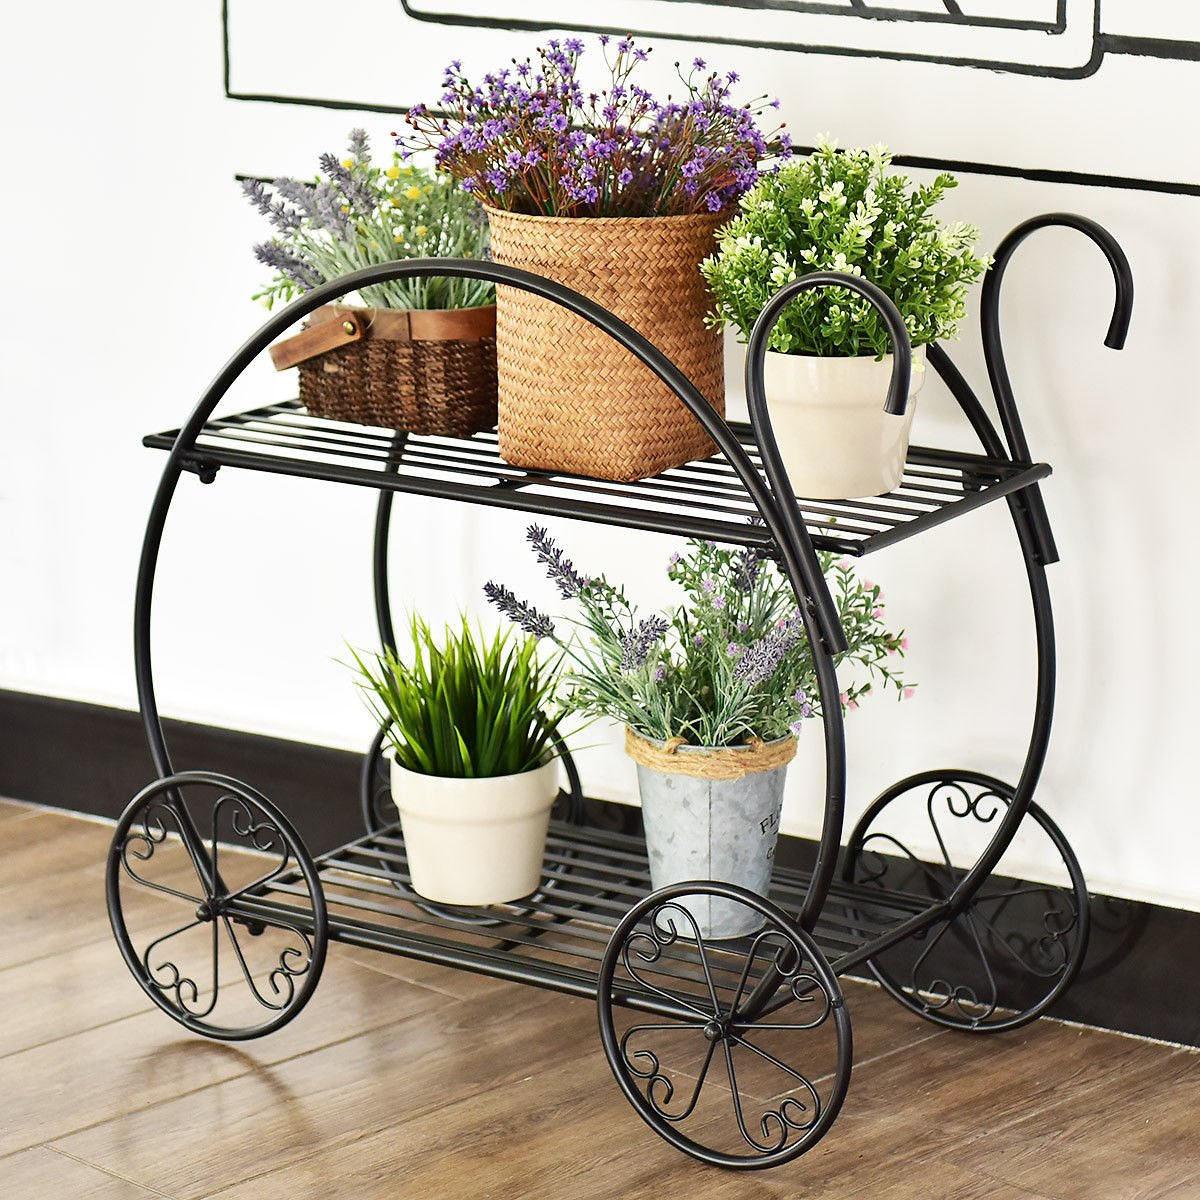 Pots & Planters Clearance Rollbacks from $12!